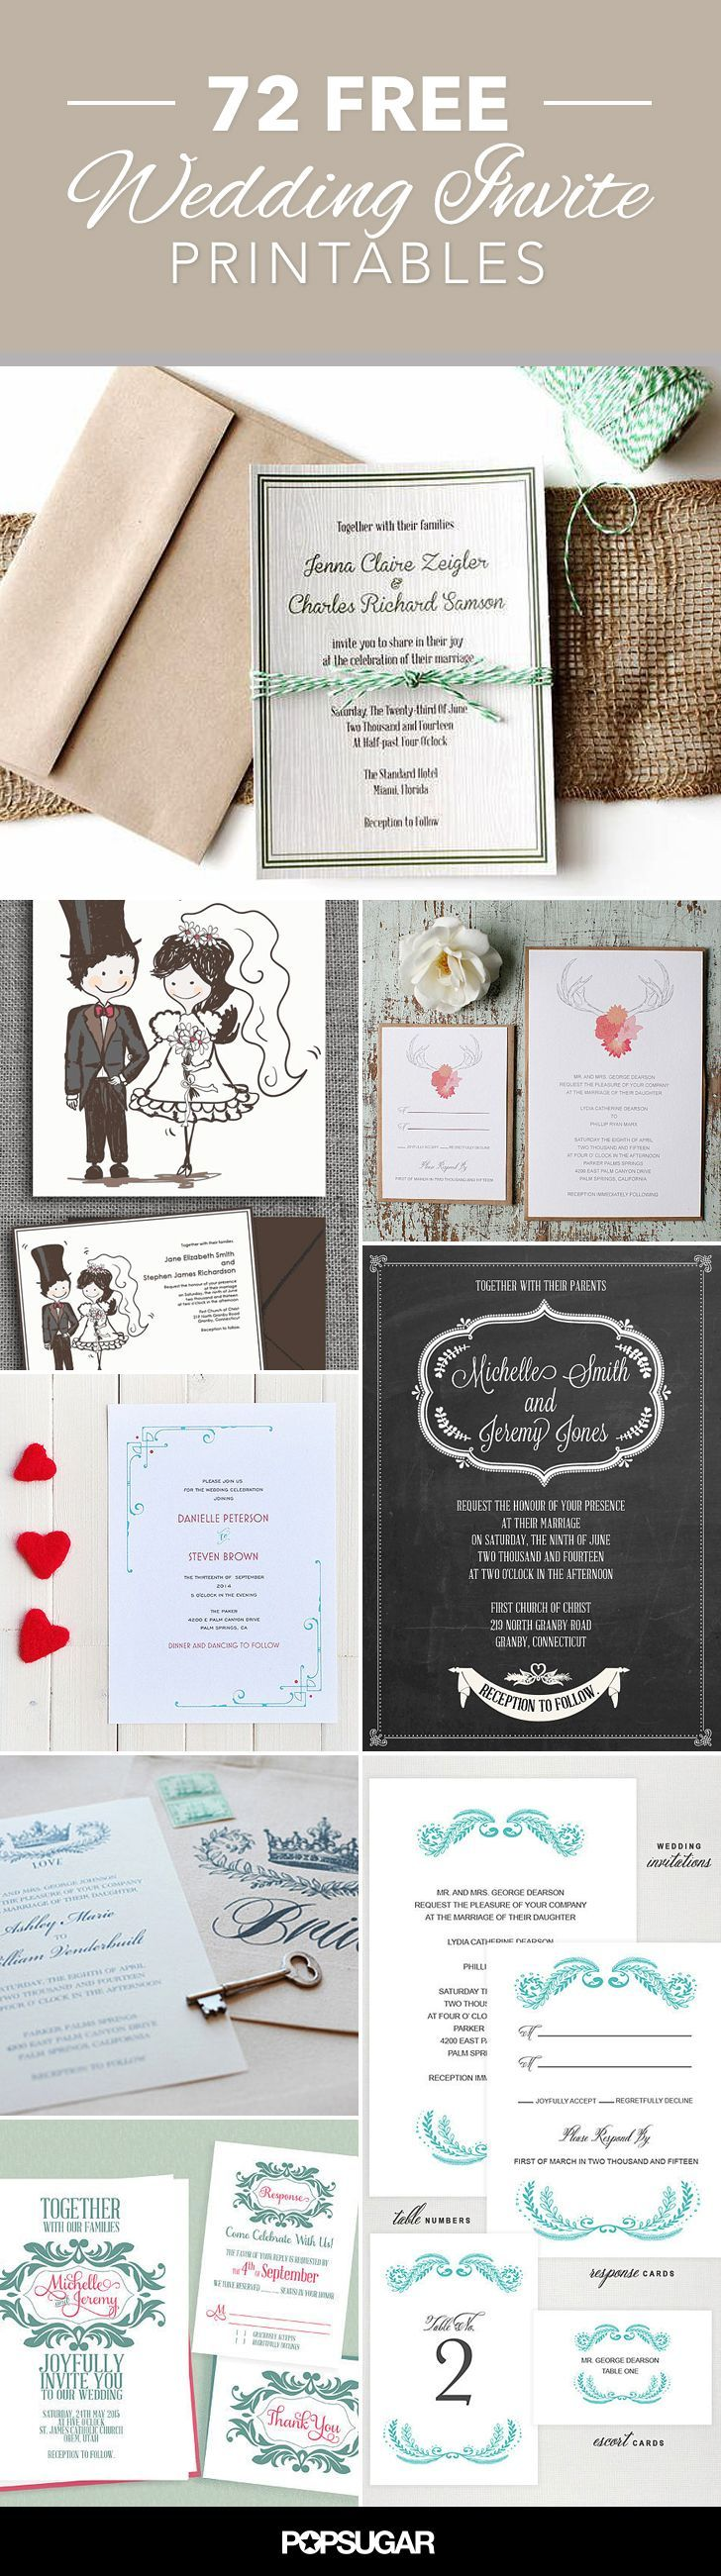 invitation message for wedding in hindi%0A    Beautiful WeddingInvite Printables to Download For Free